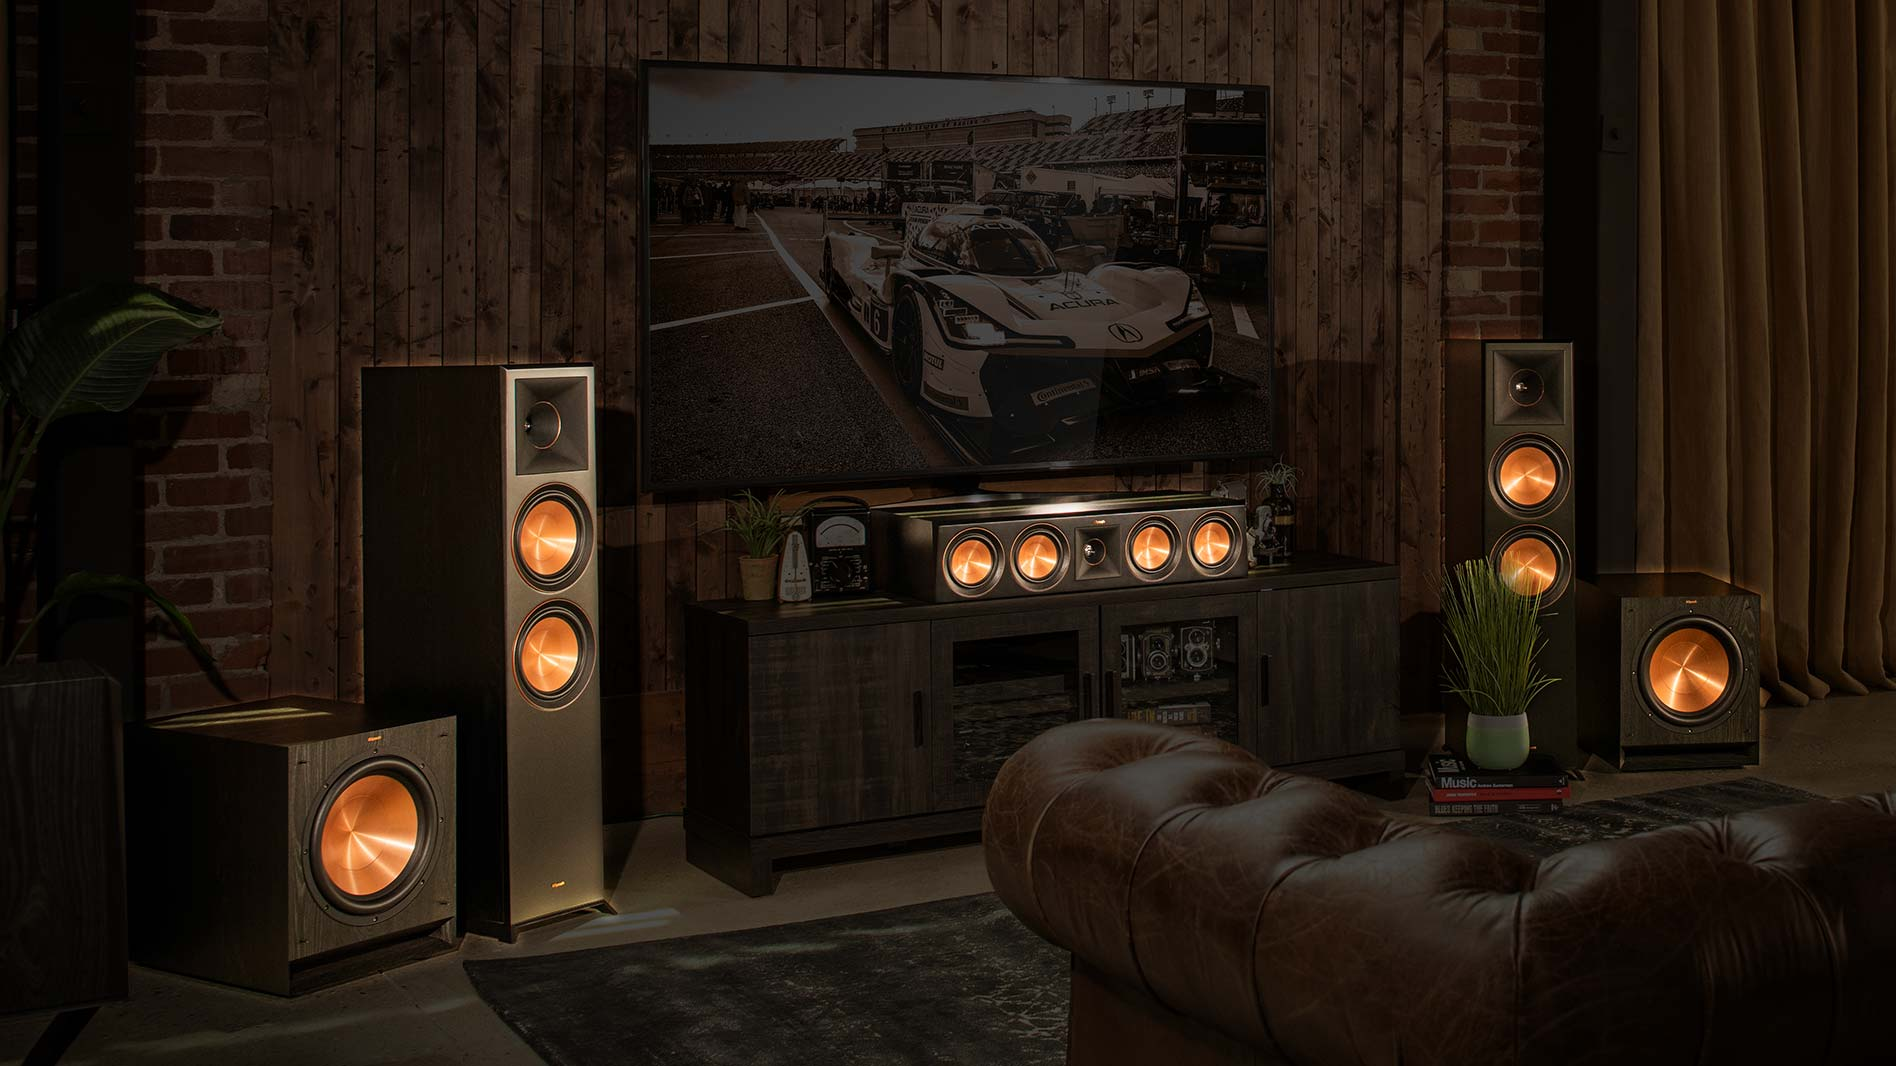 Klipsch Glowing Speaker Header